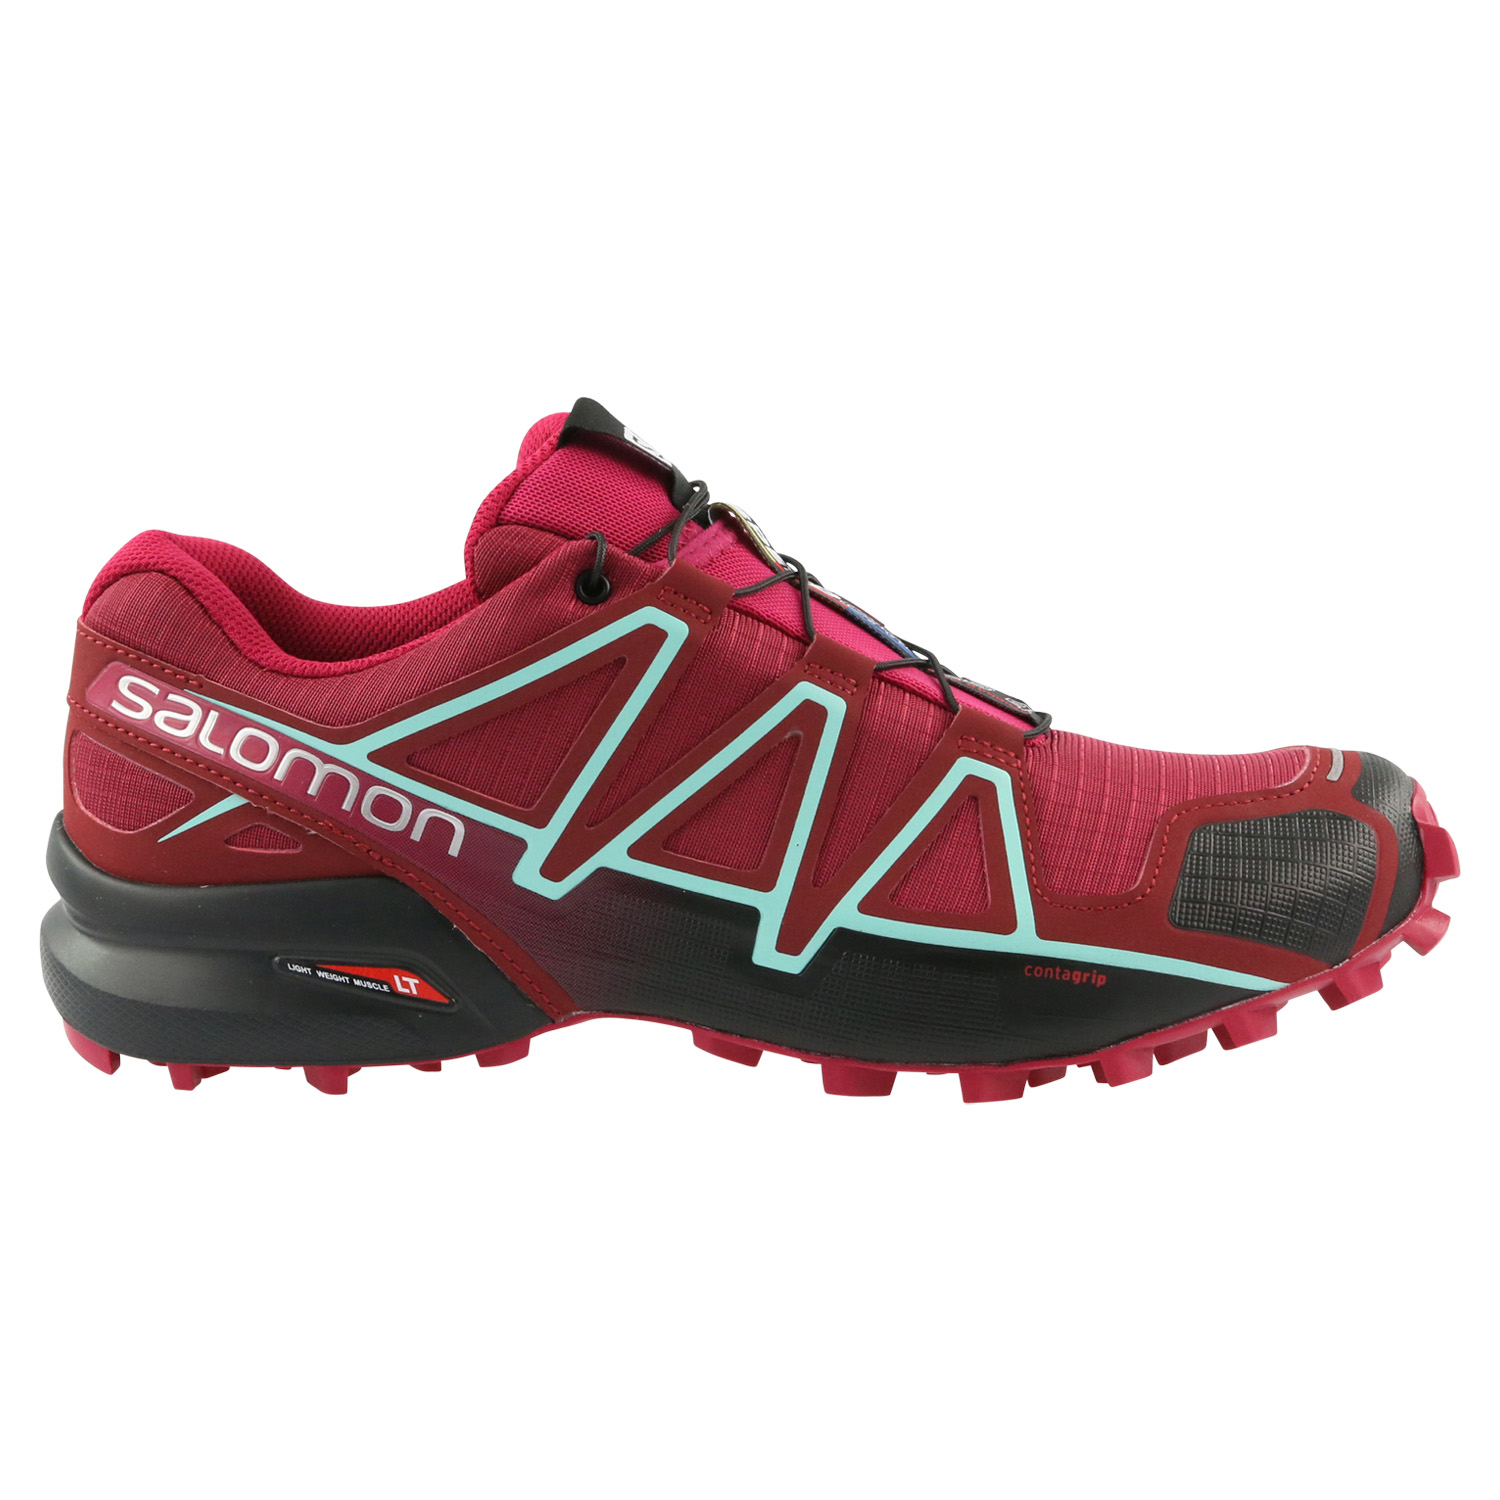 salomon speedcross 4 cs schuhe laufschuhe trail running outdoor damen ebay. Black Bedroom Furniture Sets. Home Design Ideas